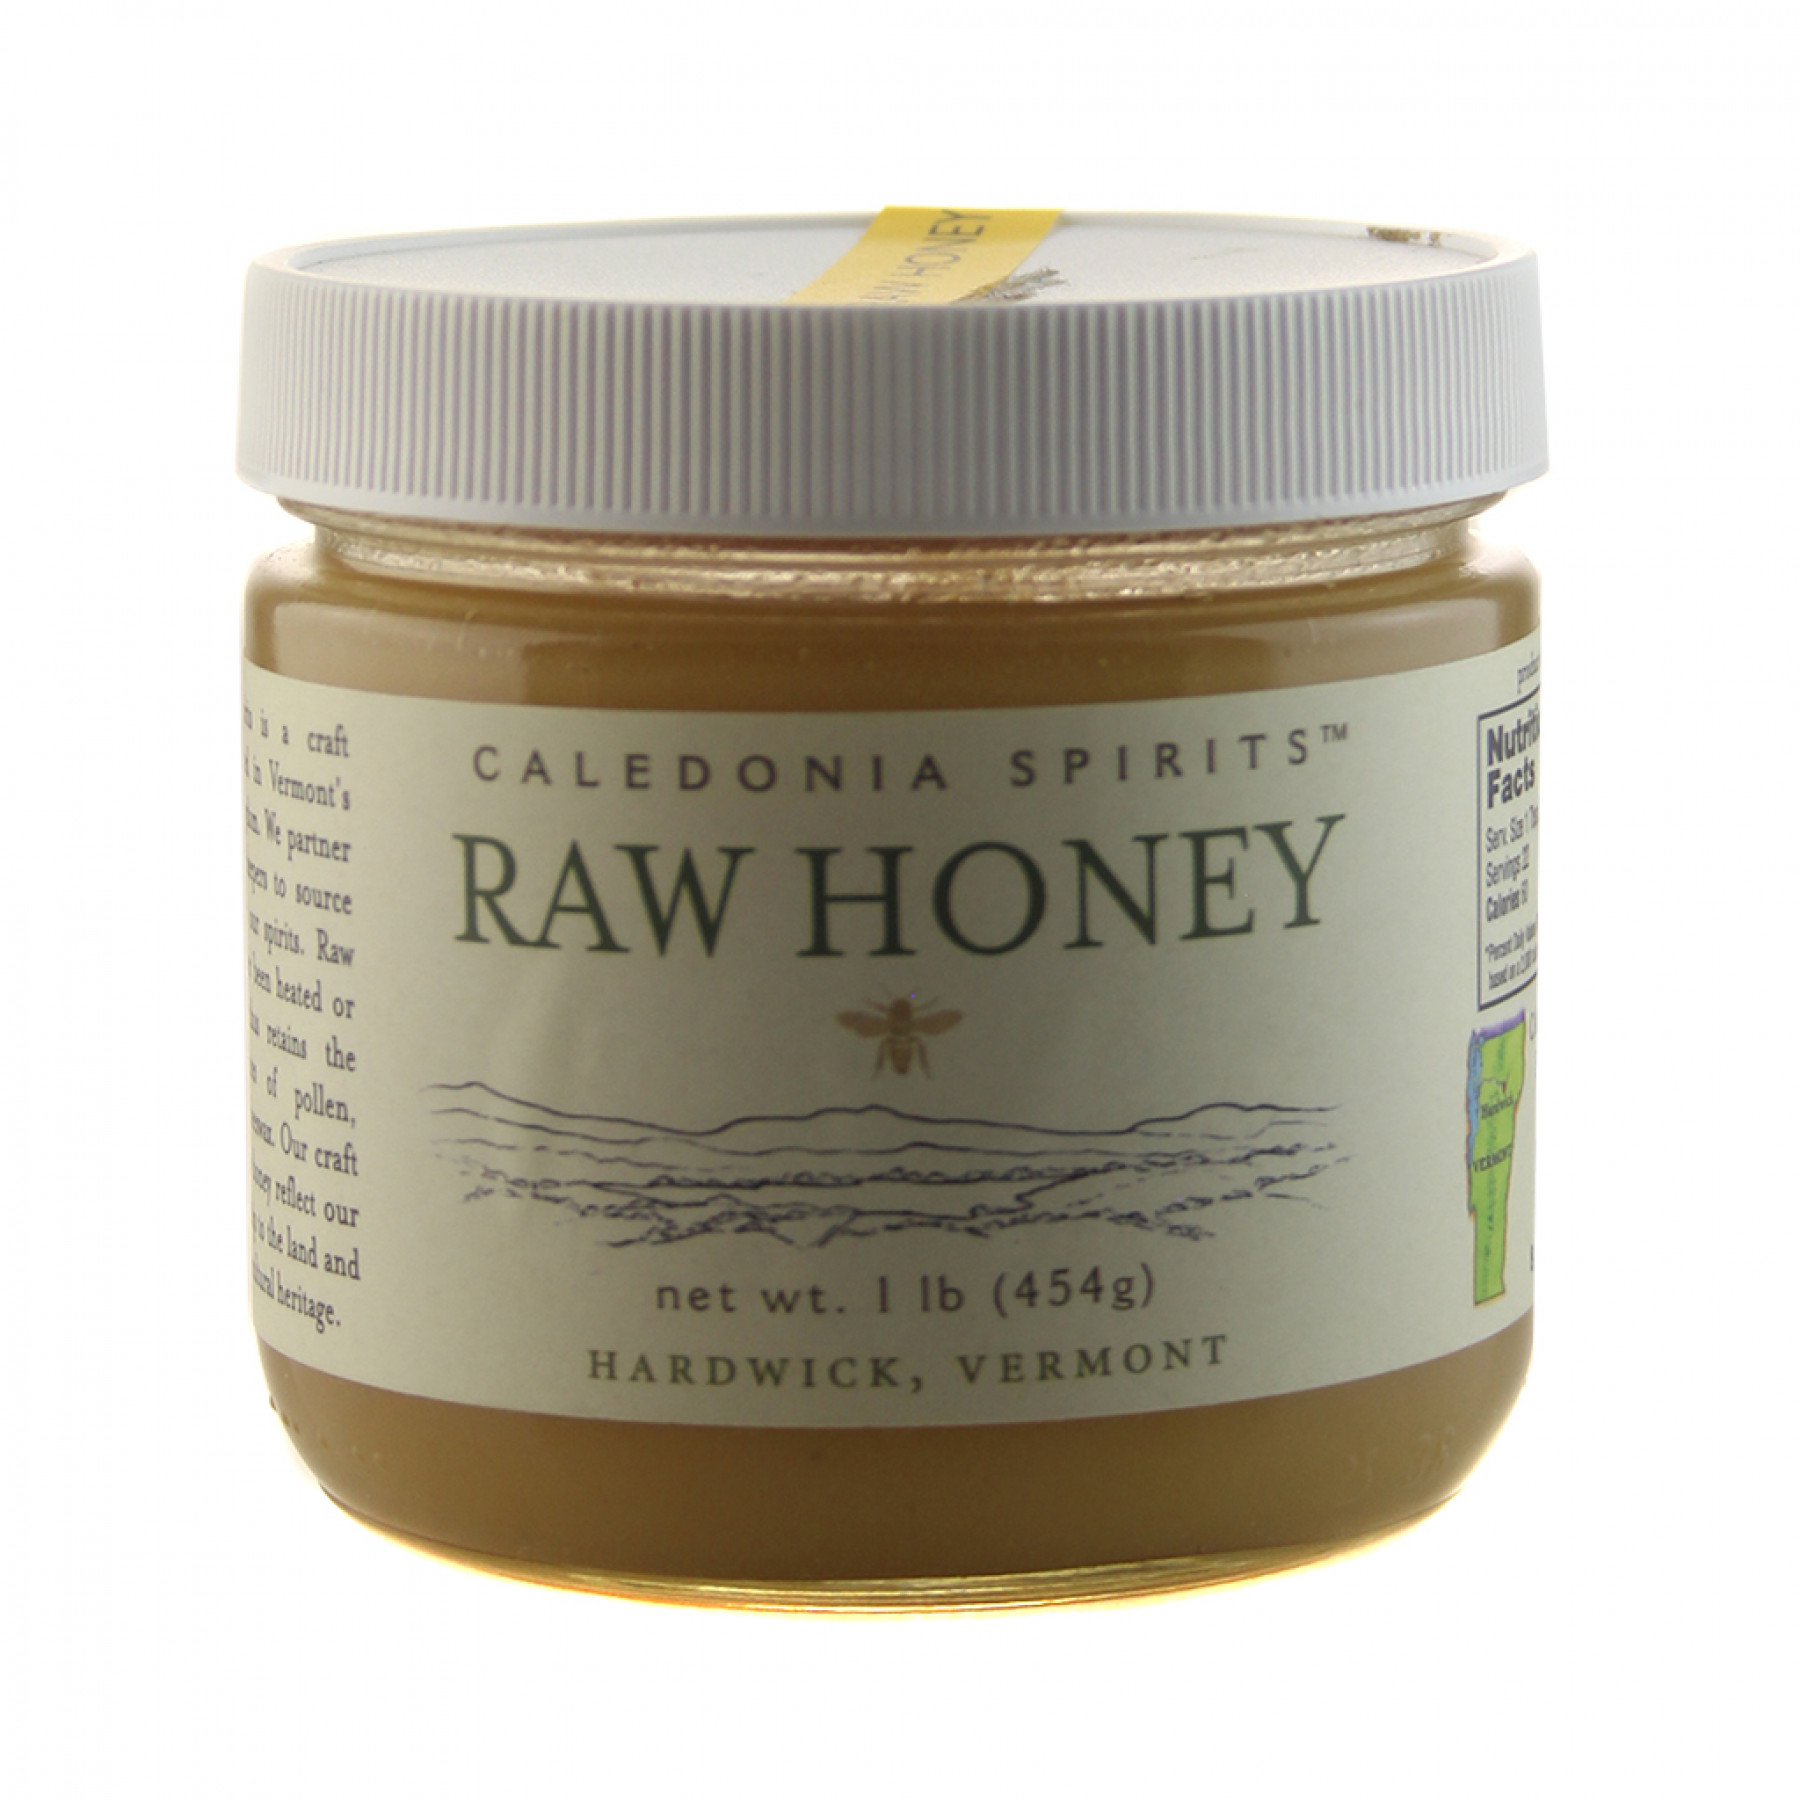 Barr Hill Pure Raw Honey Caledonia Spirits